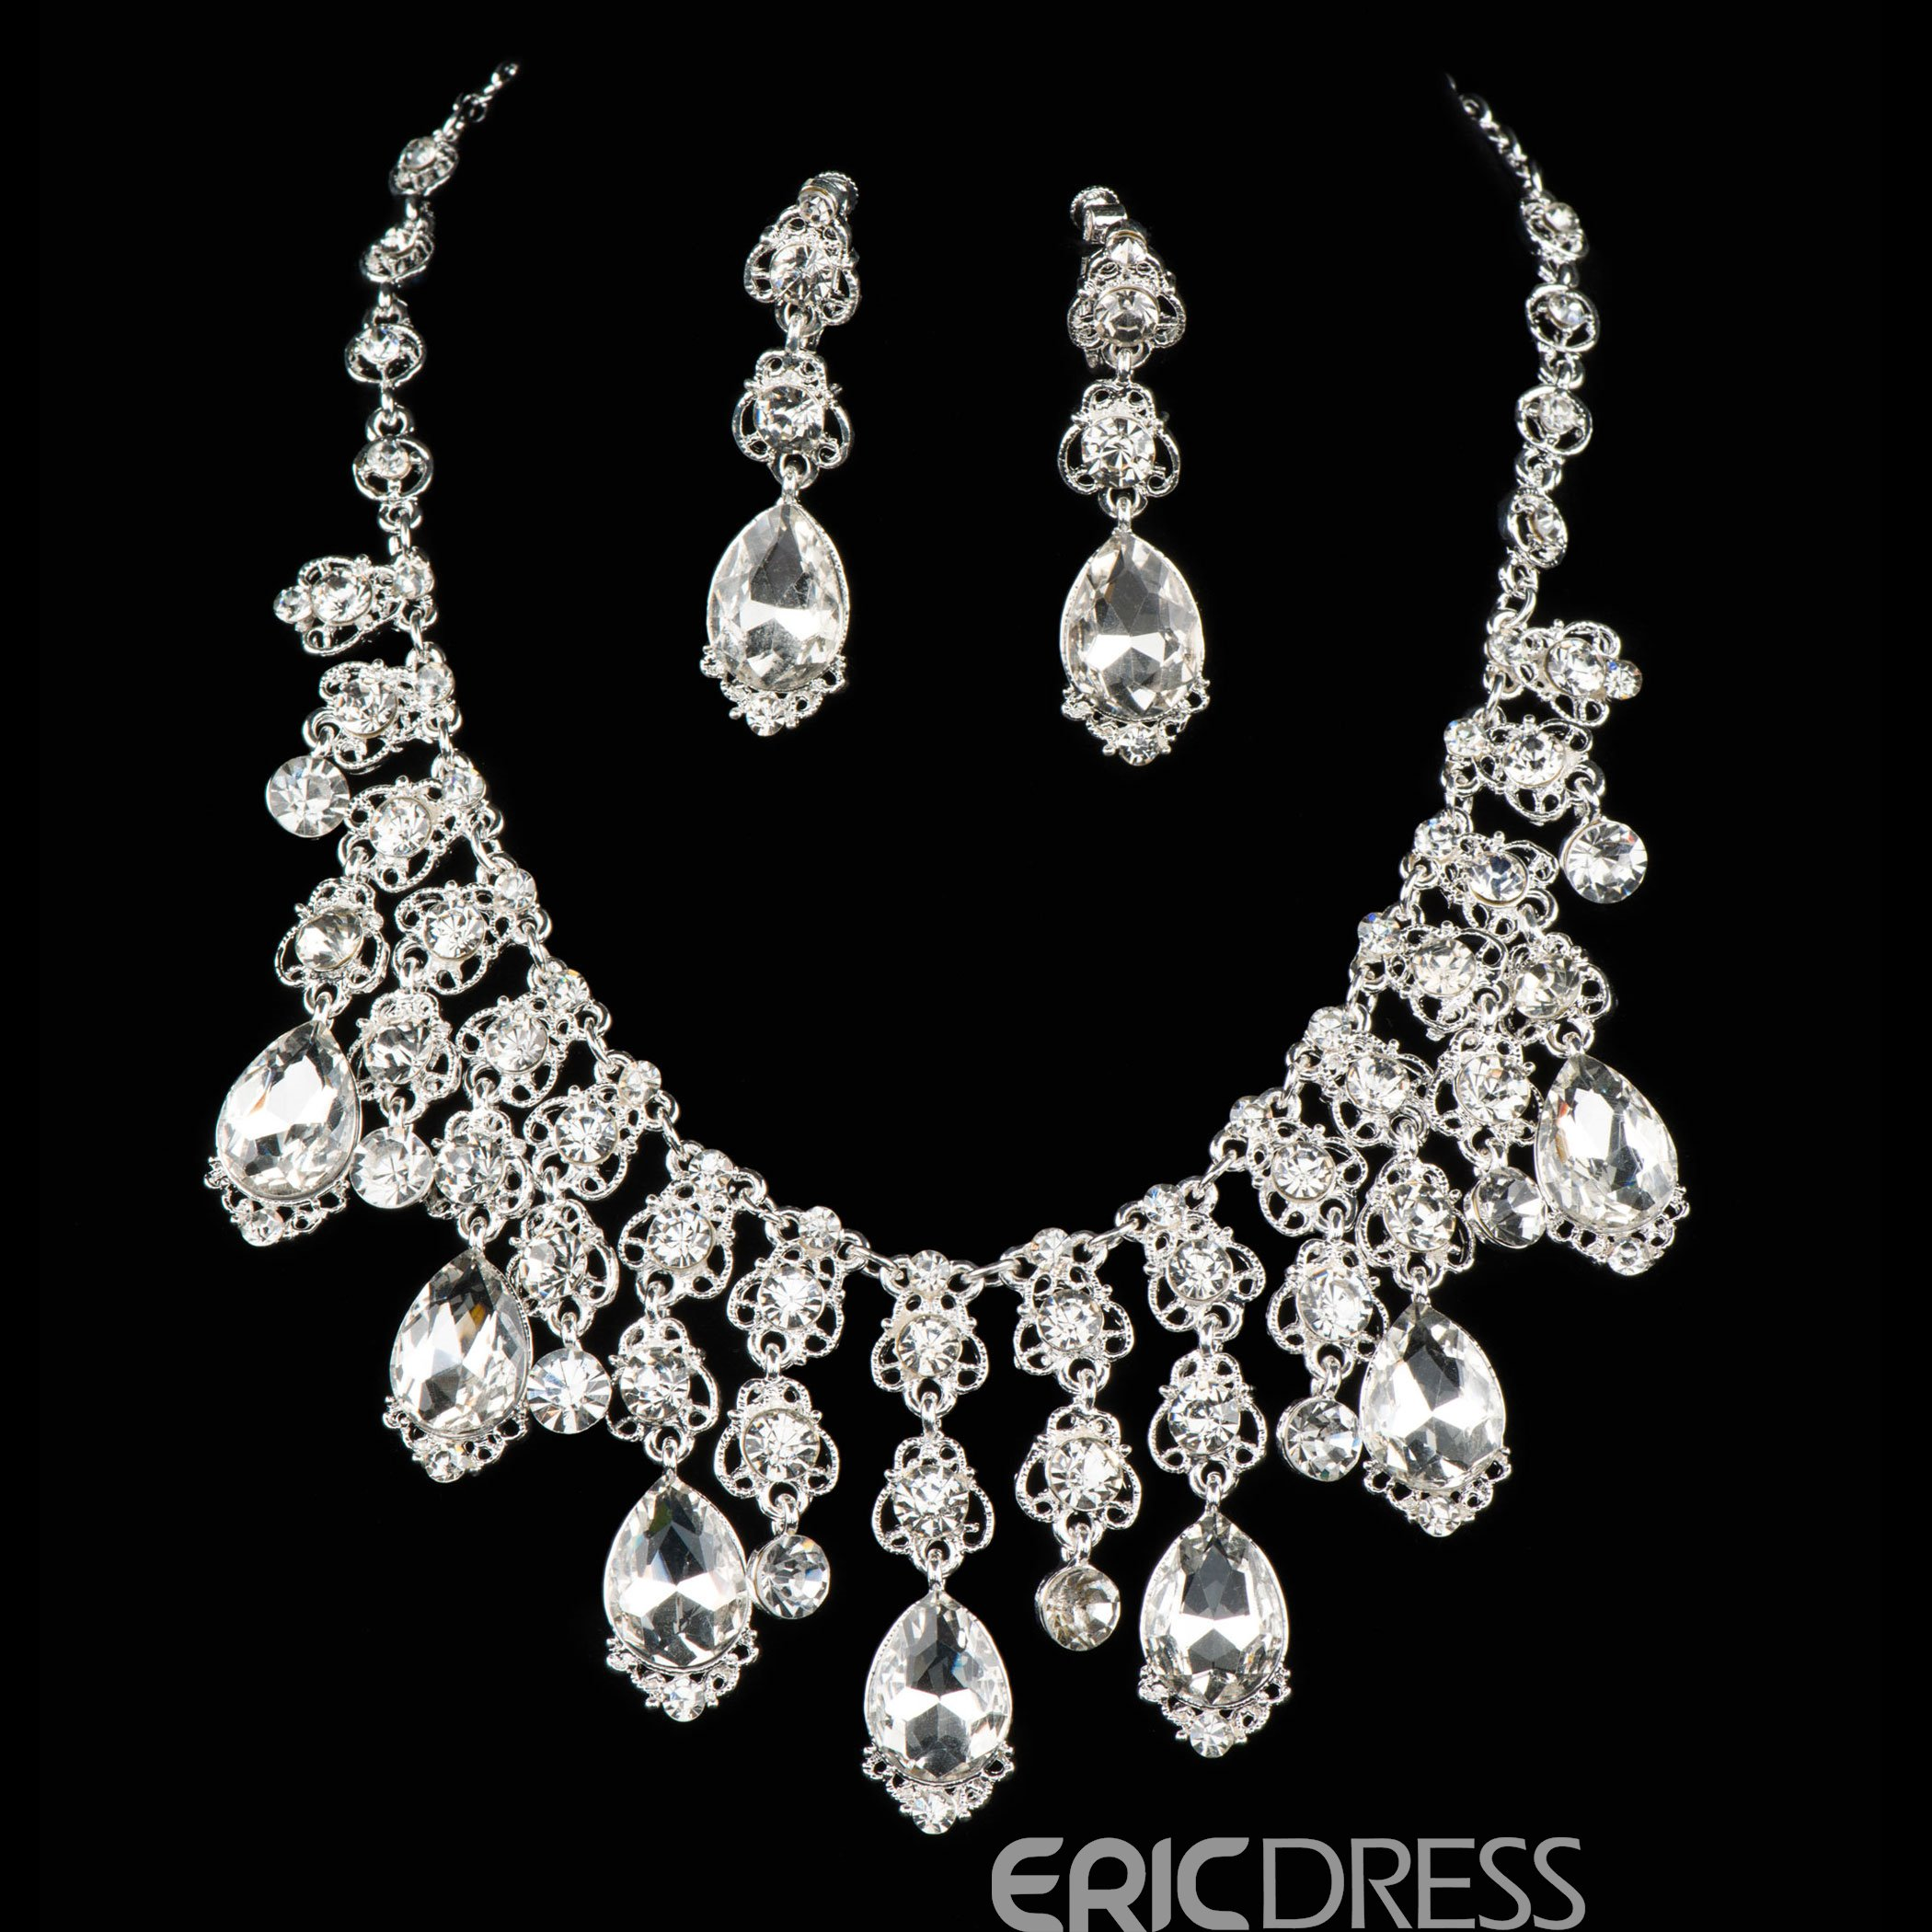 Ericdress Shining Cystal Jewelry Set